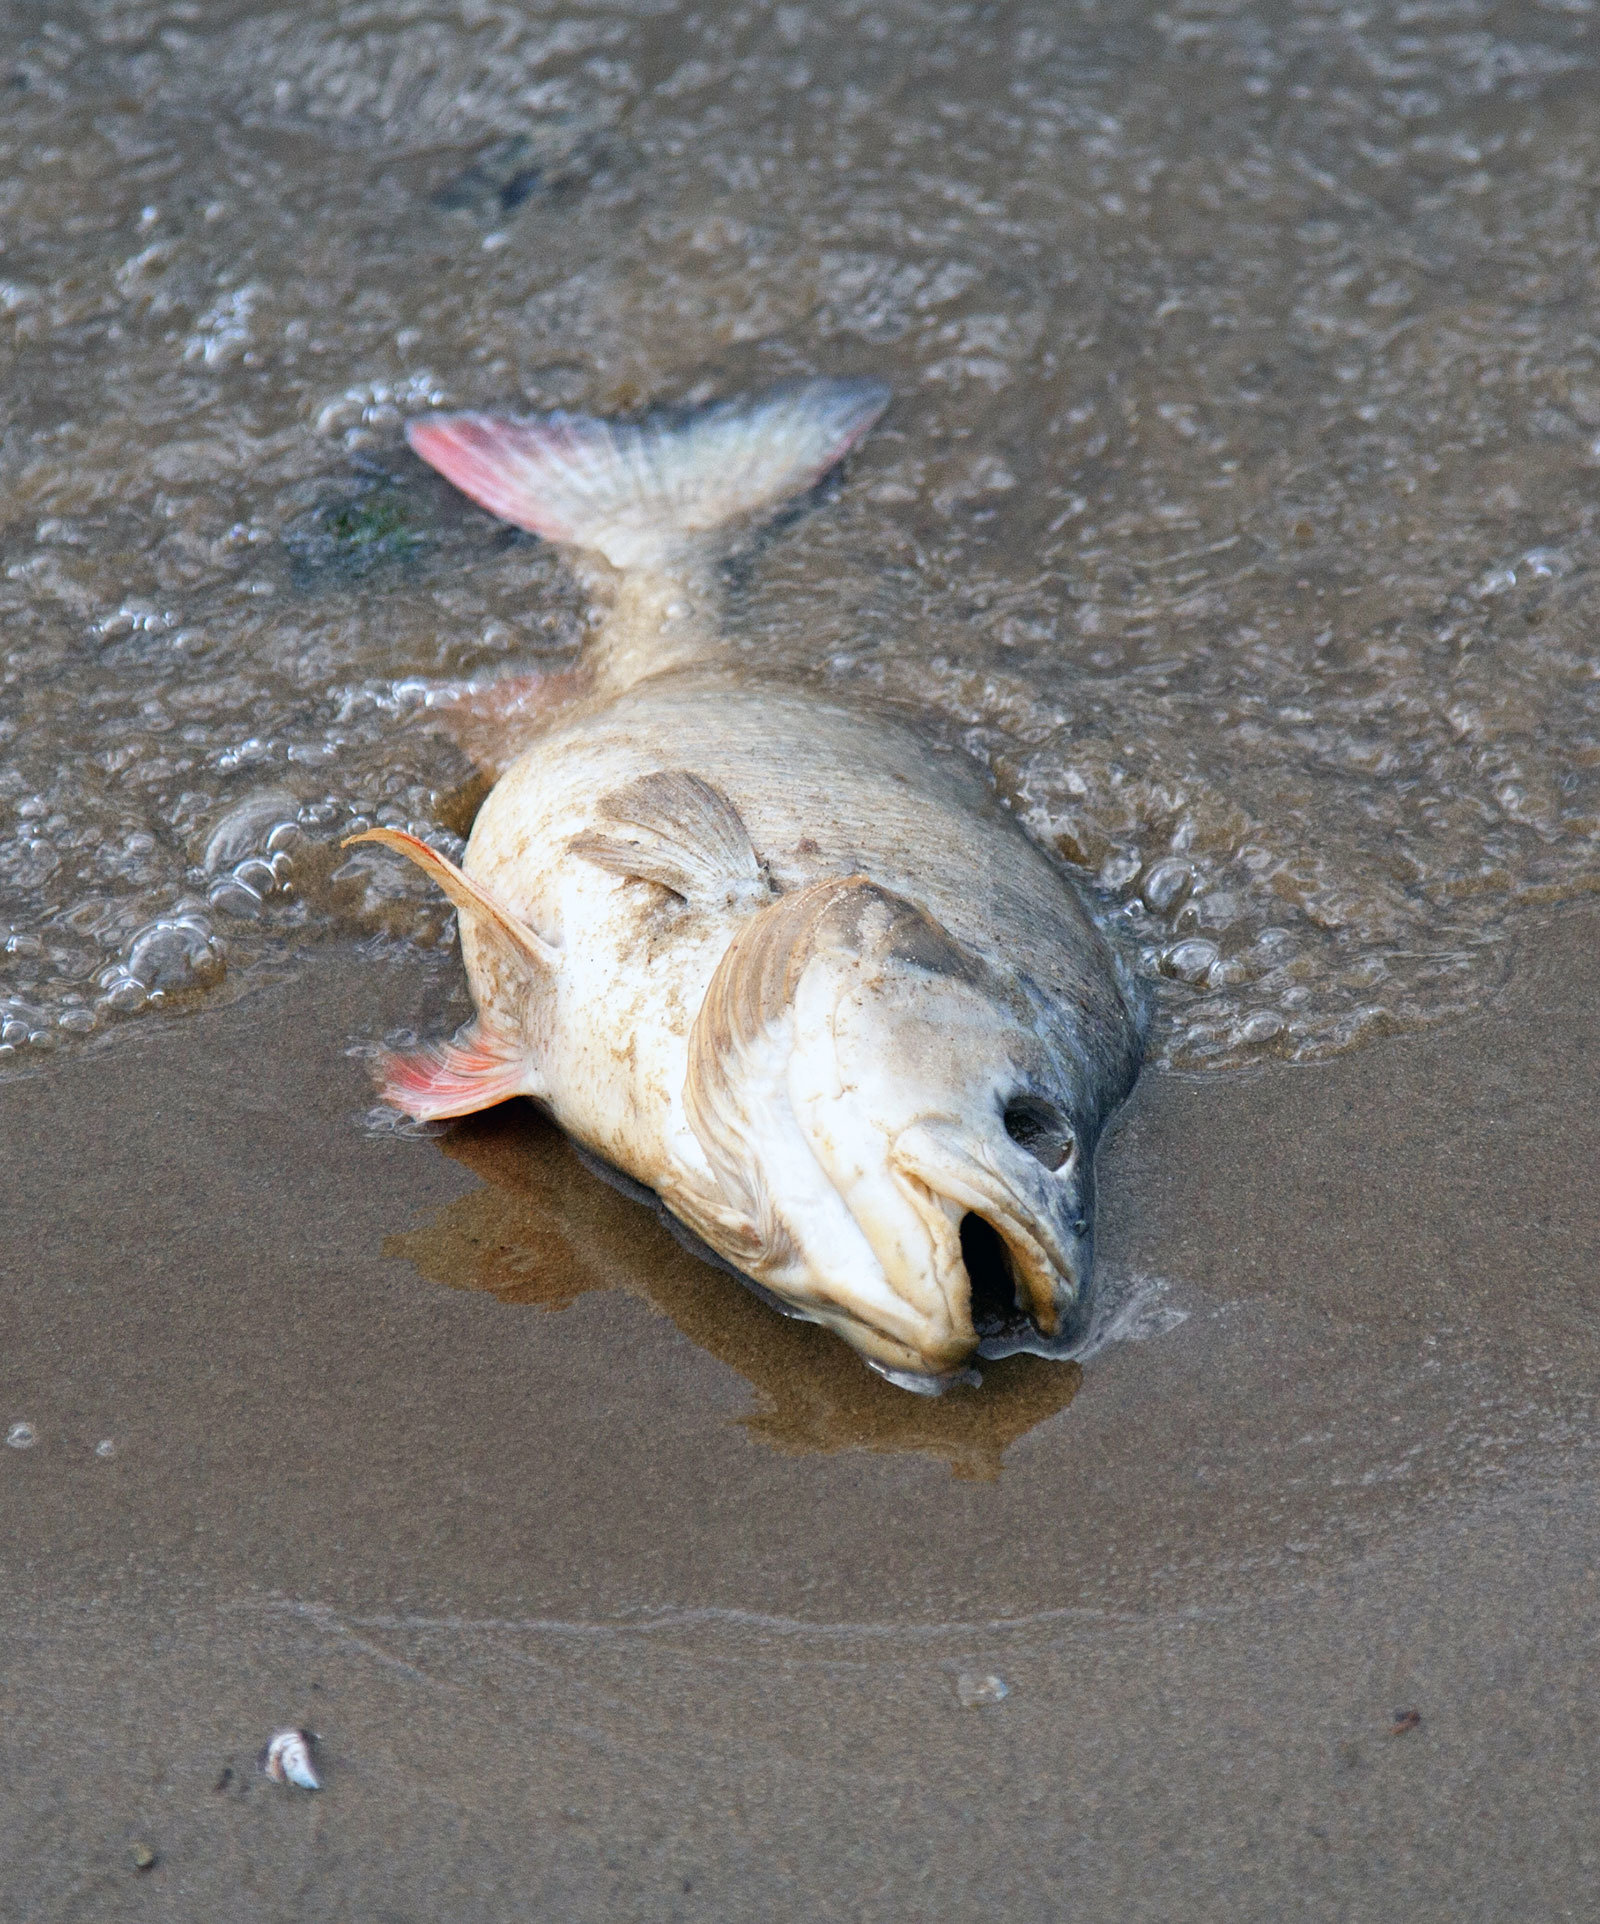 A dead fish on the shore.